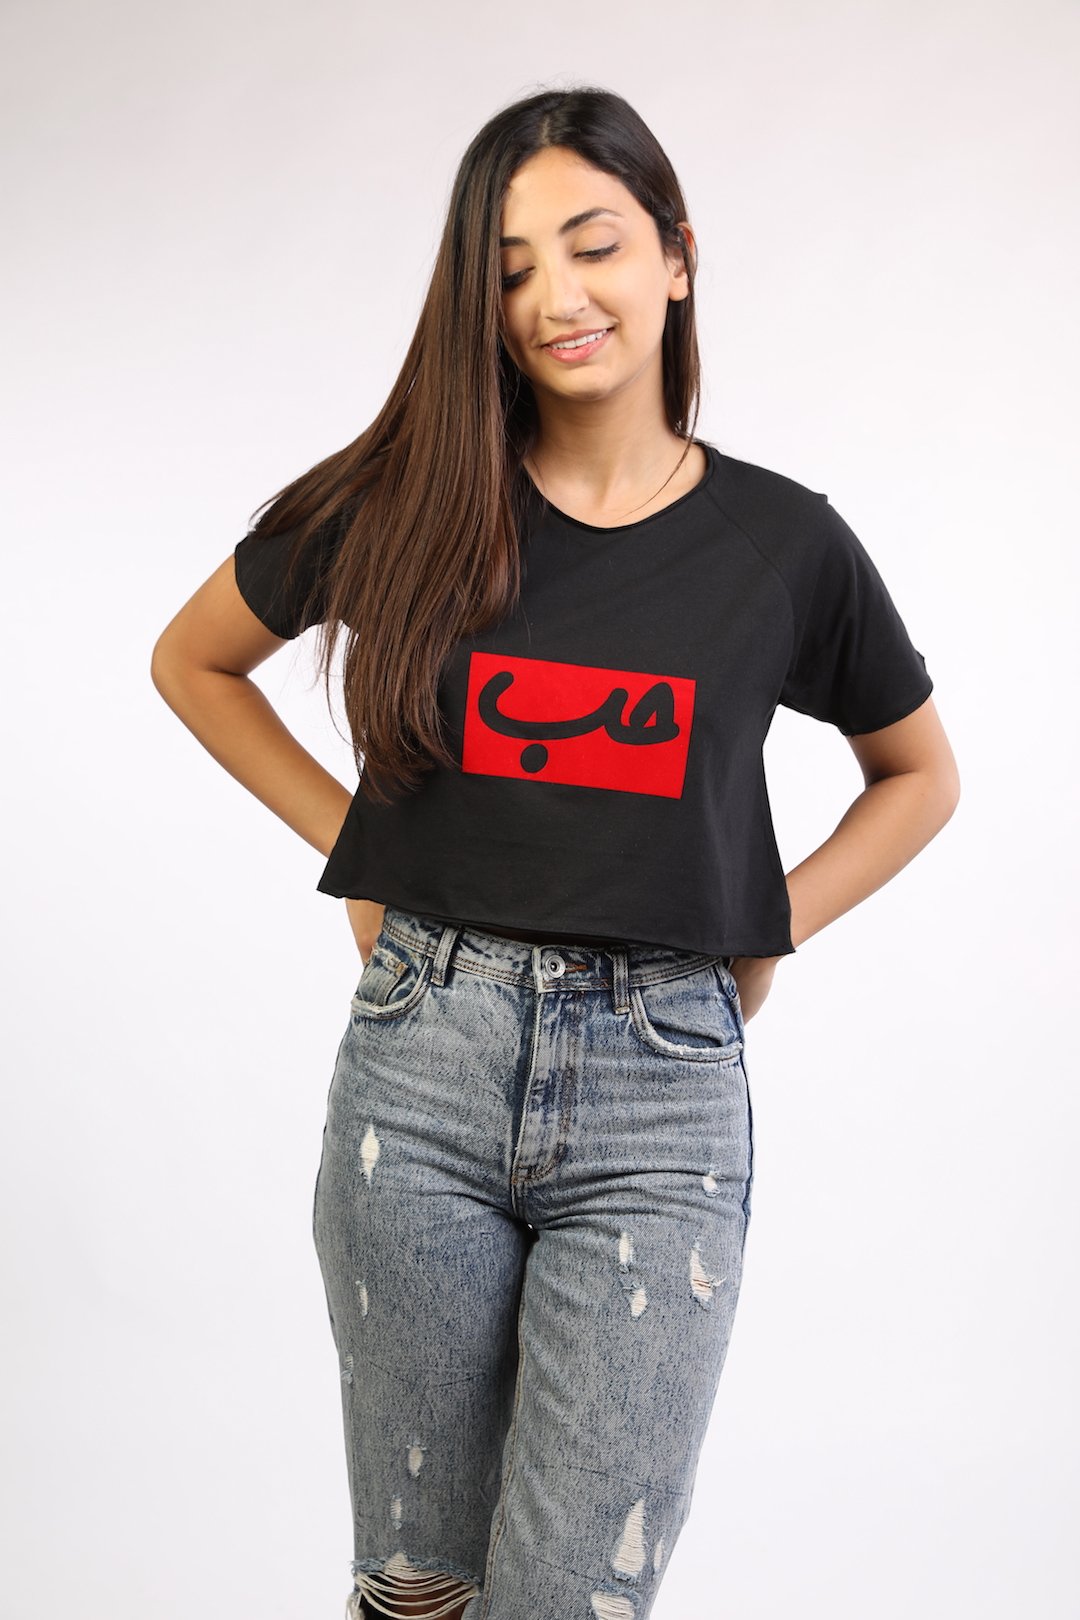 6a779813de4 Black Crop Top With Red Patch Hob - Lebelik